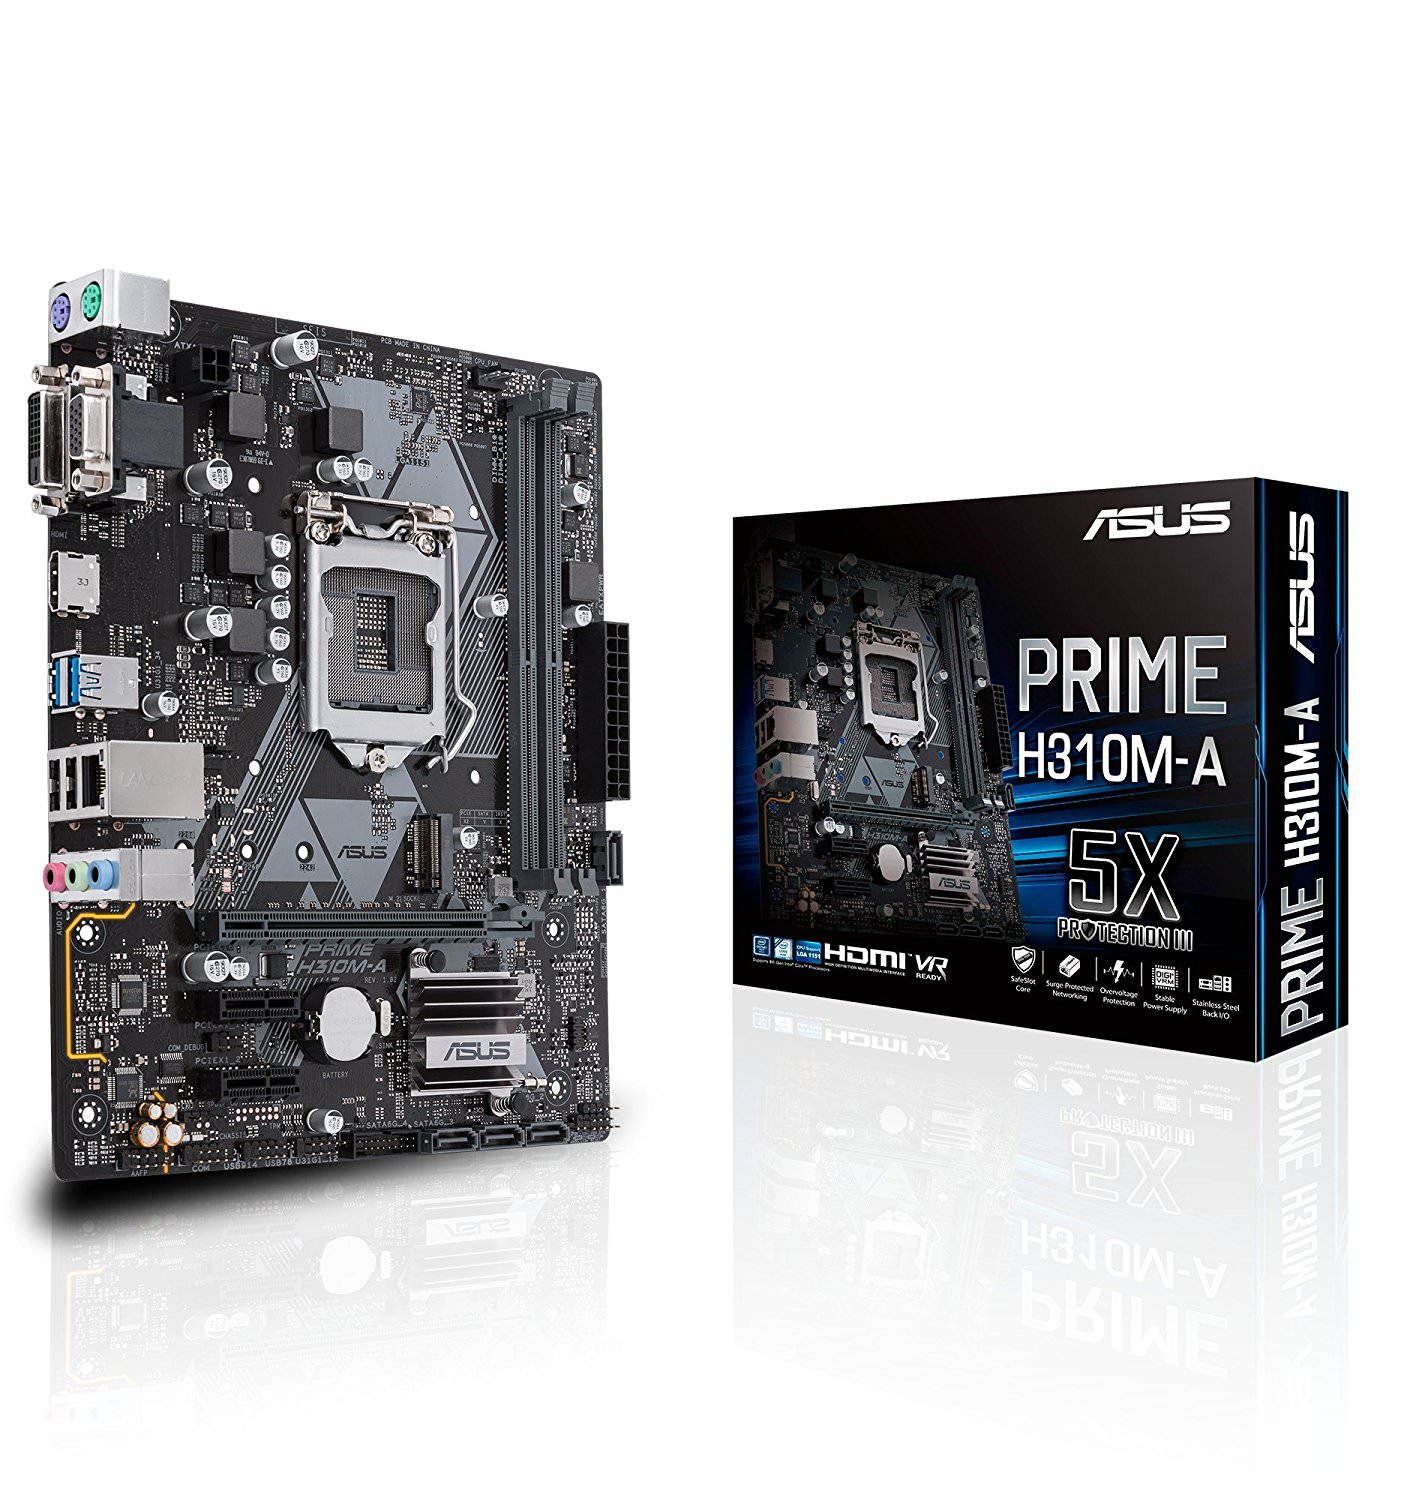 Asus Prime H310M-A Motherboard - PRIME H310M-A